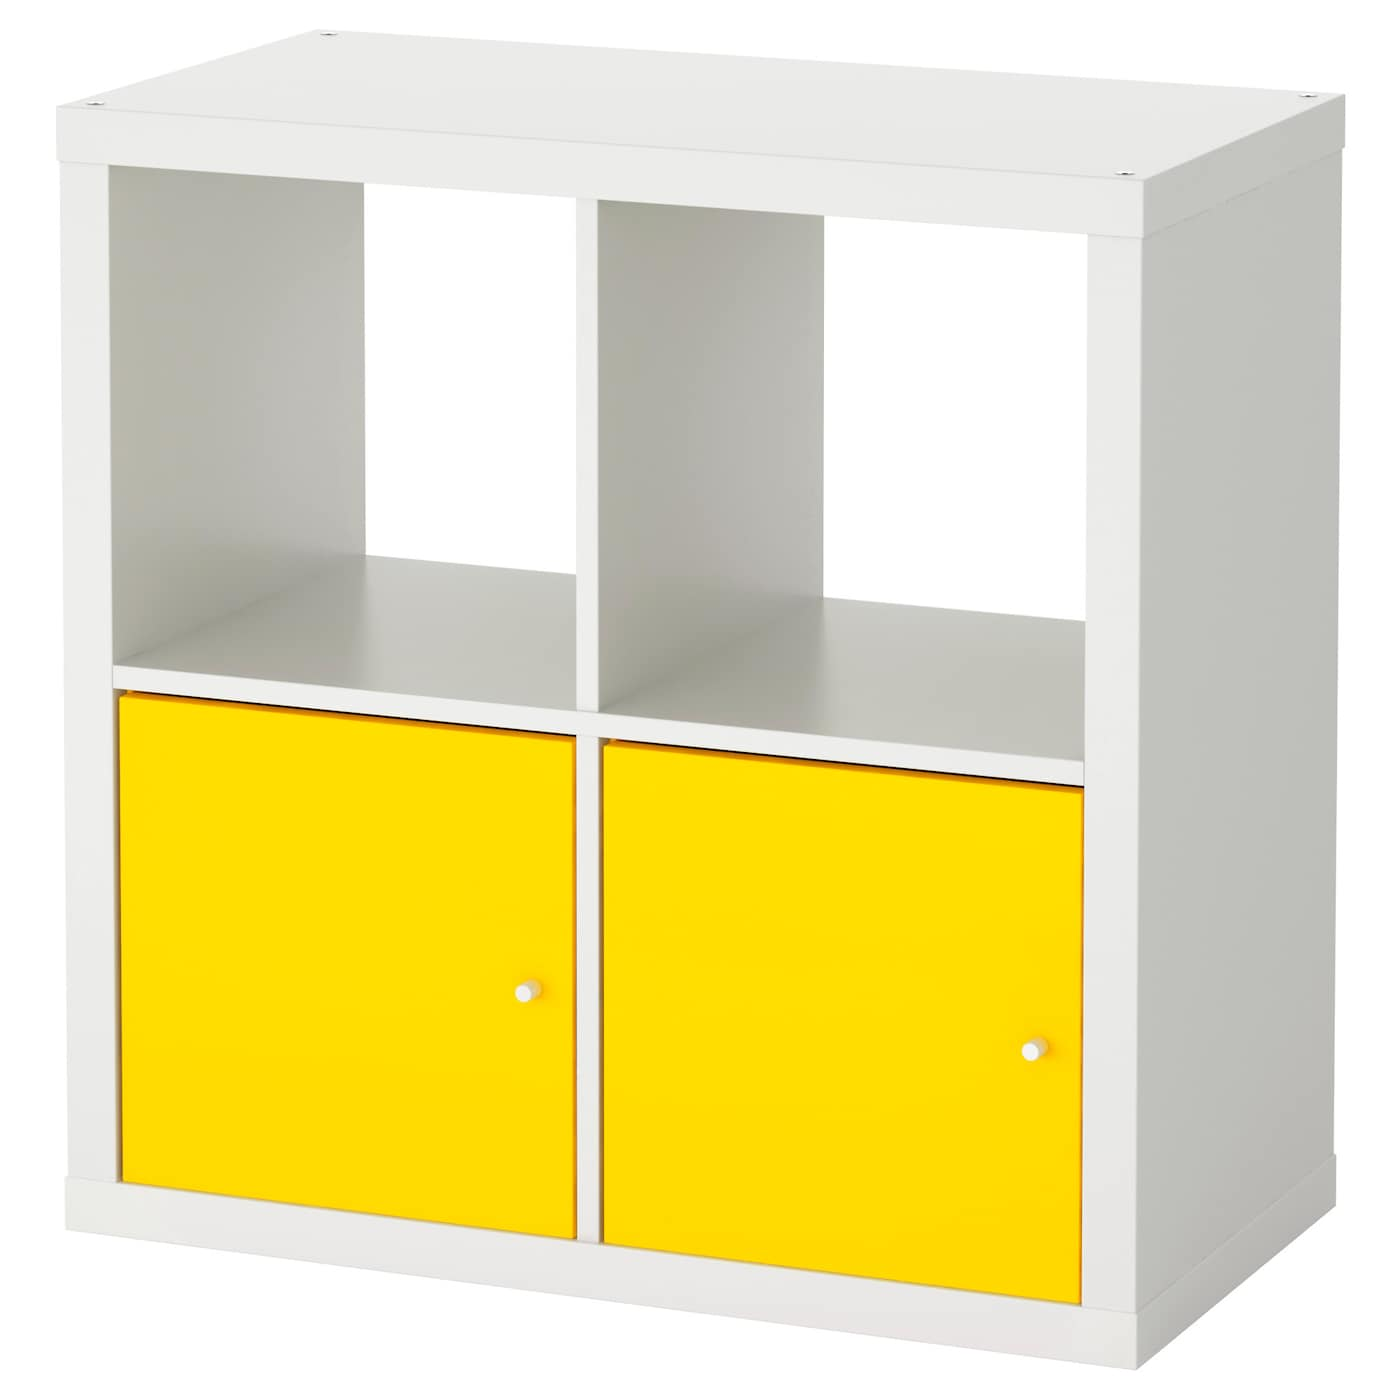 Kallax shelving unit with doors white yellow 77x77 cm ikea for Sideboard gelb